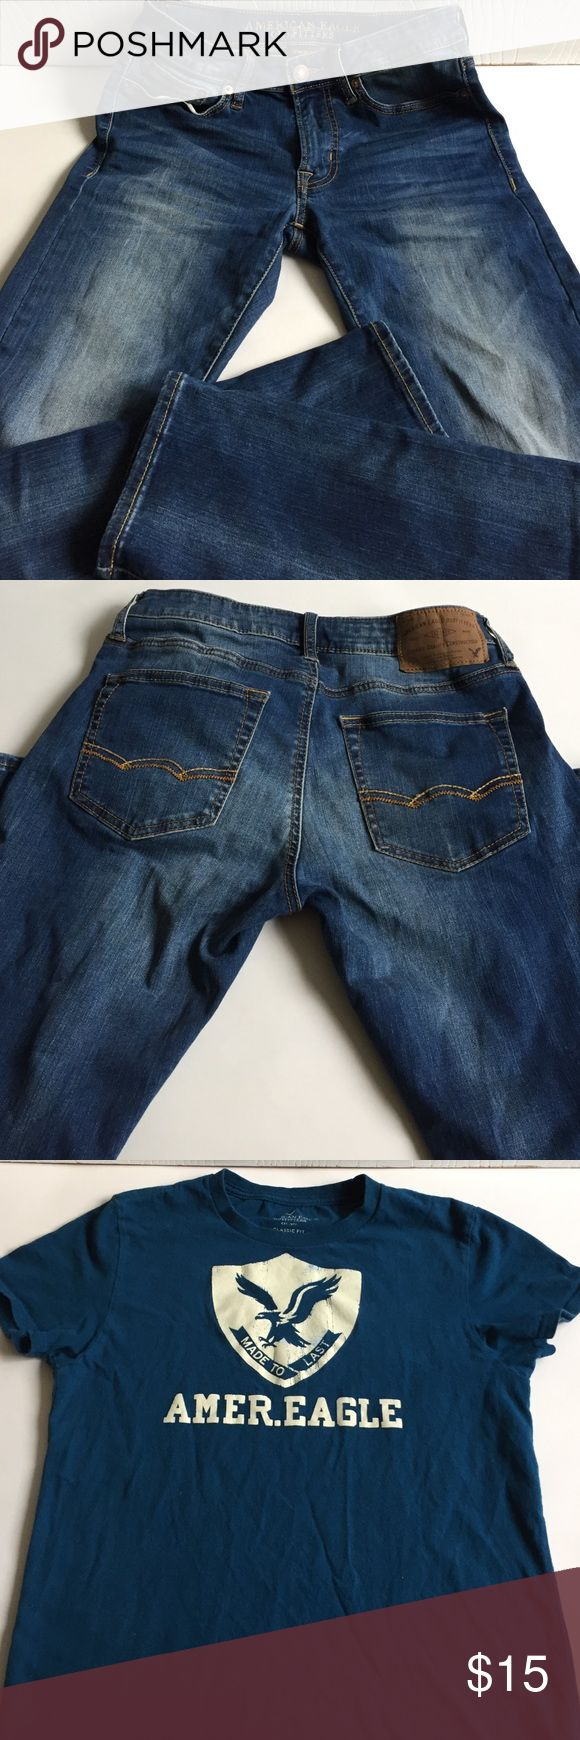 Bundle with American Eagle American Eagle boys jeans size 28 x30 plus a bonus American Eagle T shirt size S bust 18'' length 25'' has a very tiny hole( fixed). Jeans in a very good condition American Eagle Outfitters Bottoms Casual